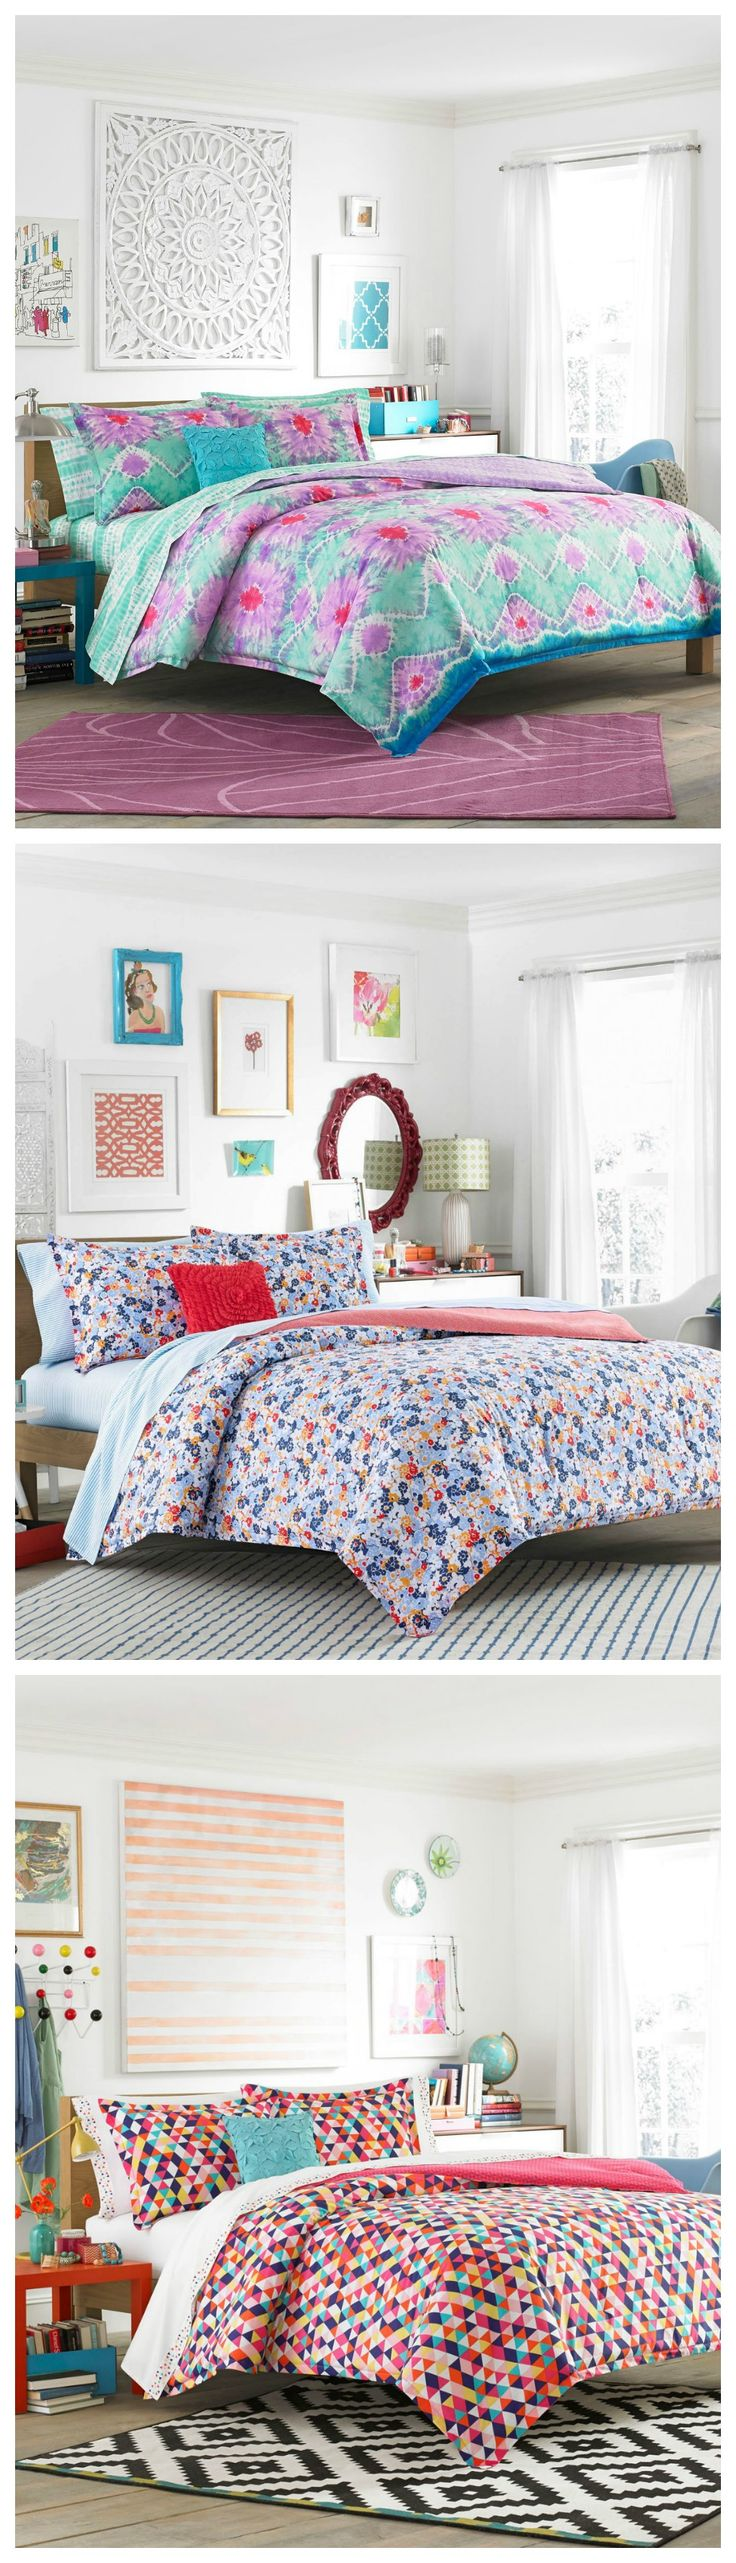 Brighten up your bedroom or dorm room in a bold way! hayneedle.com has all the looks you'll love, PLUS free shipping on any item over $49.